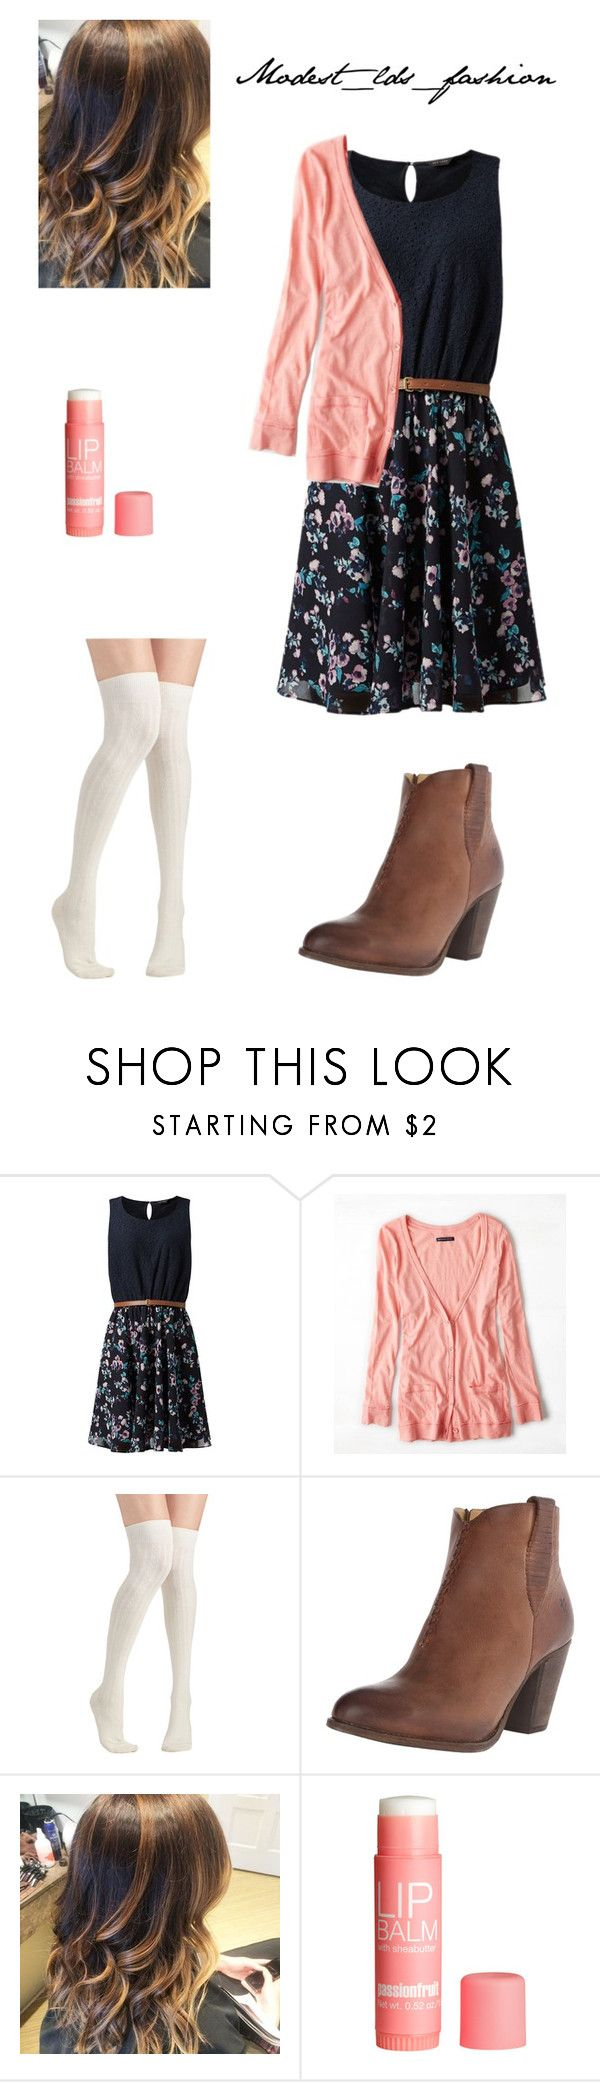 """""""Modest_lds_fashion"""" by modest-mormon-fashion ❤ liked on Polyvore featuring American Eagle Outfitters, Frye and H&M"""